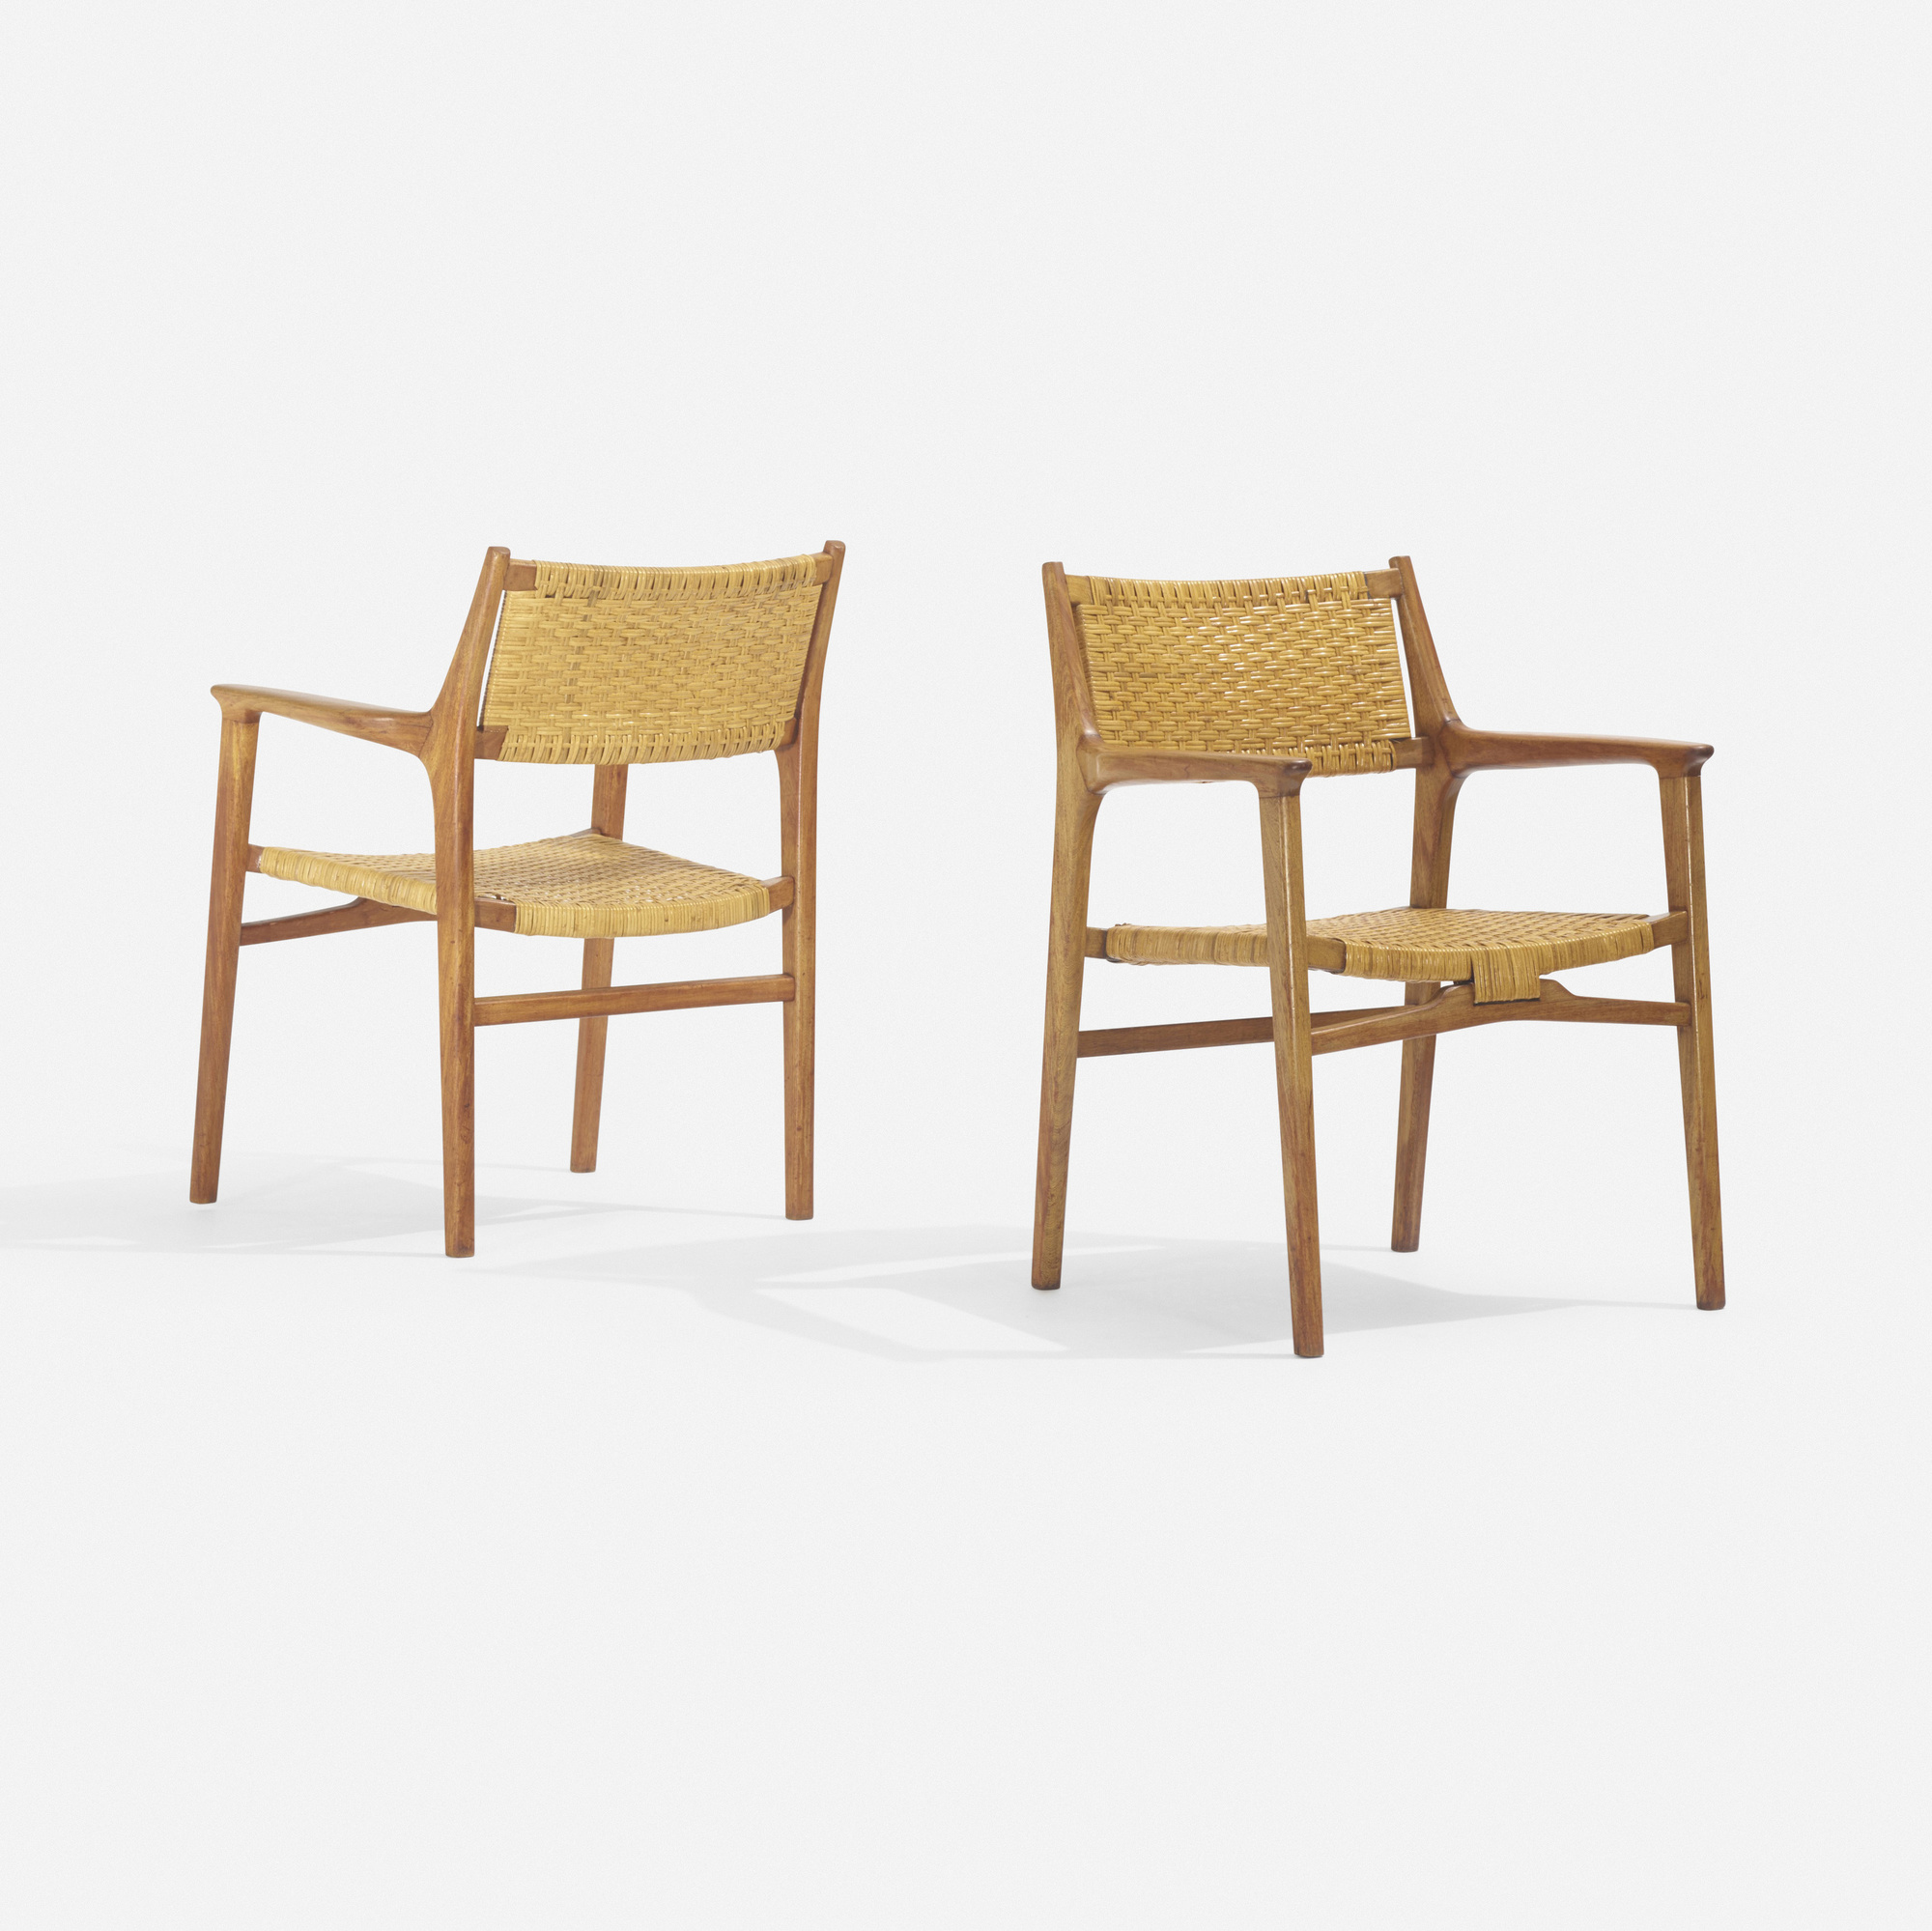 281: Hans J. Wegner / rare lounge chairs, pair (1 of 3)